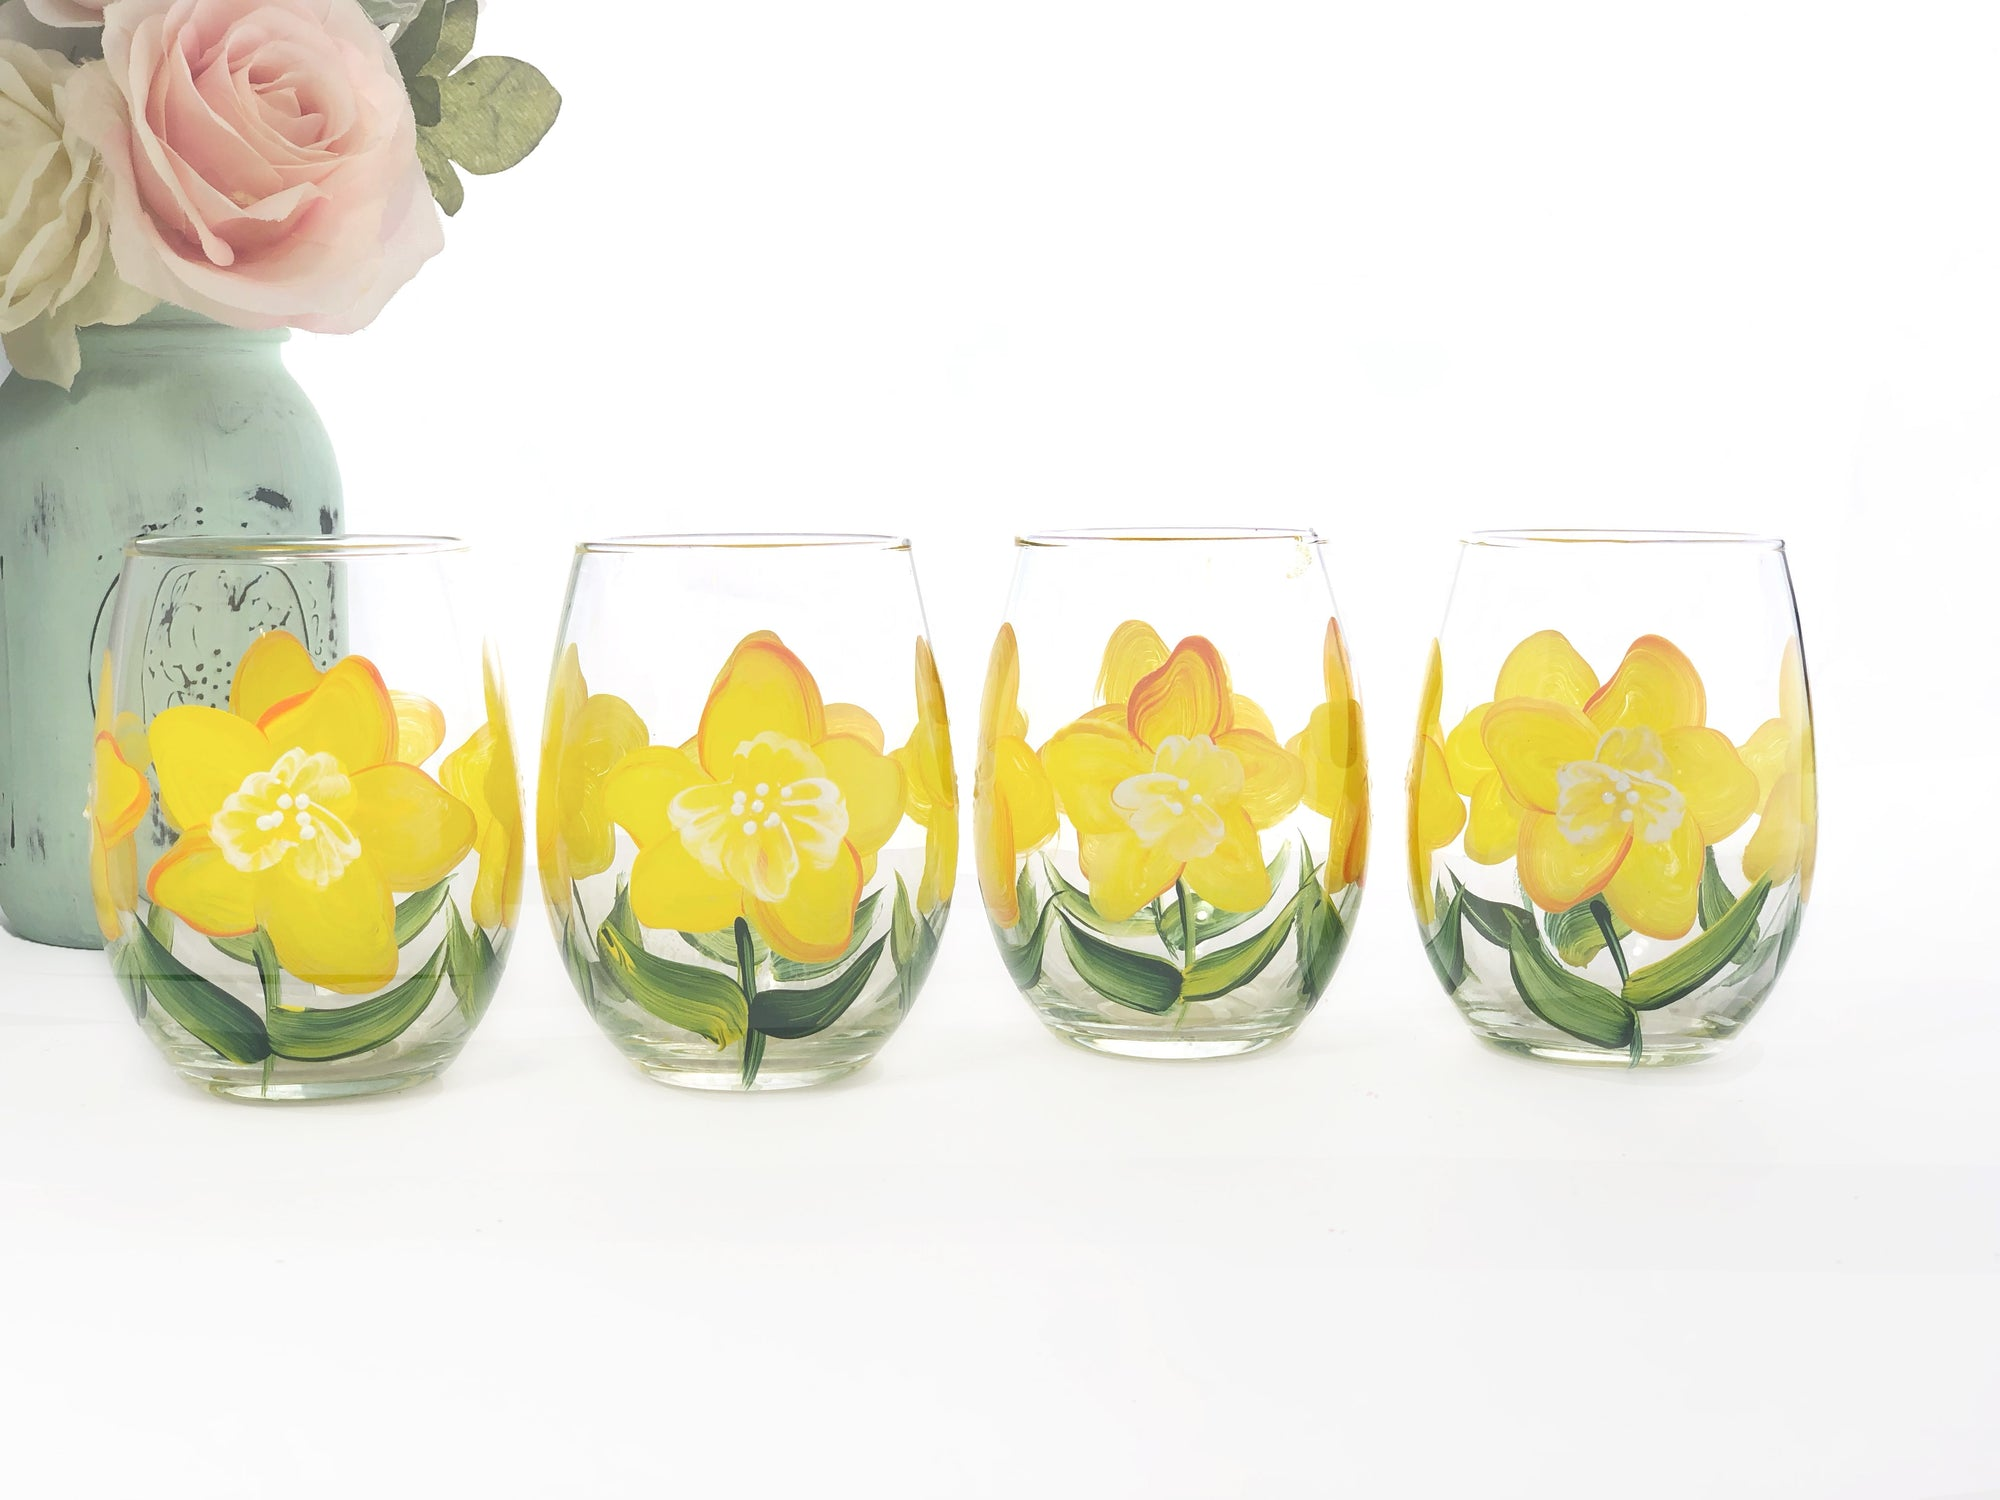 Yellow Daffodil Flower Stemless Wine Glasses- Set of 4 - Hand Painted